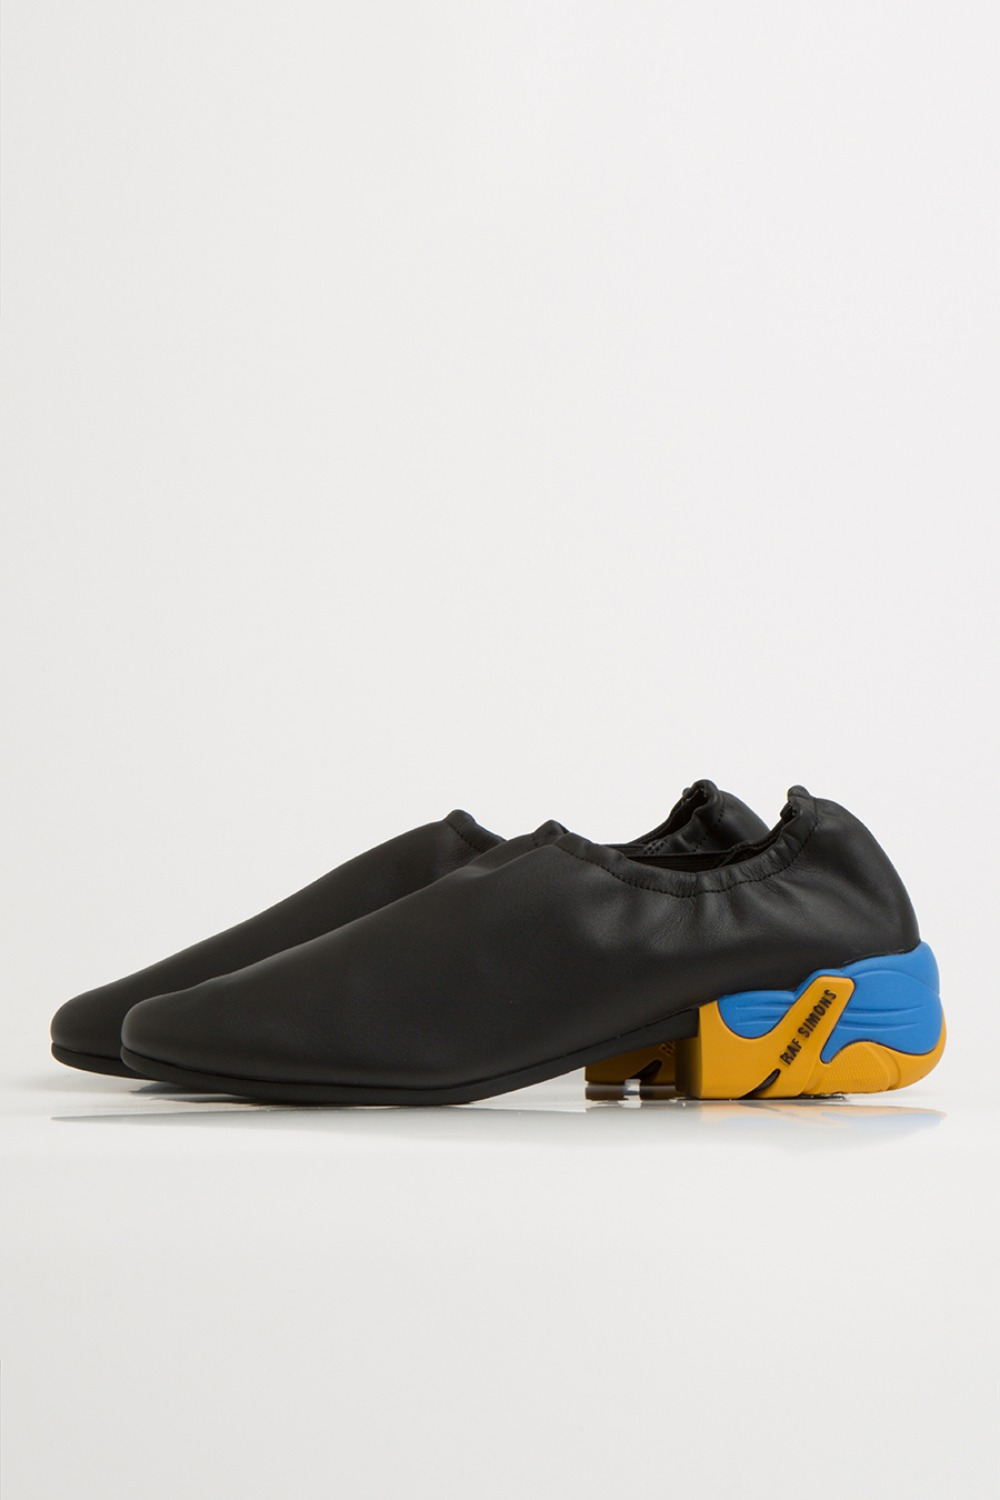 SOLARIS-1 LOW 202-983 BLACK/BLUE/YELLOW